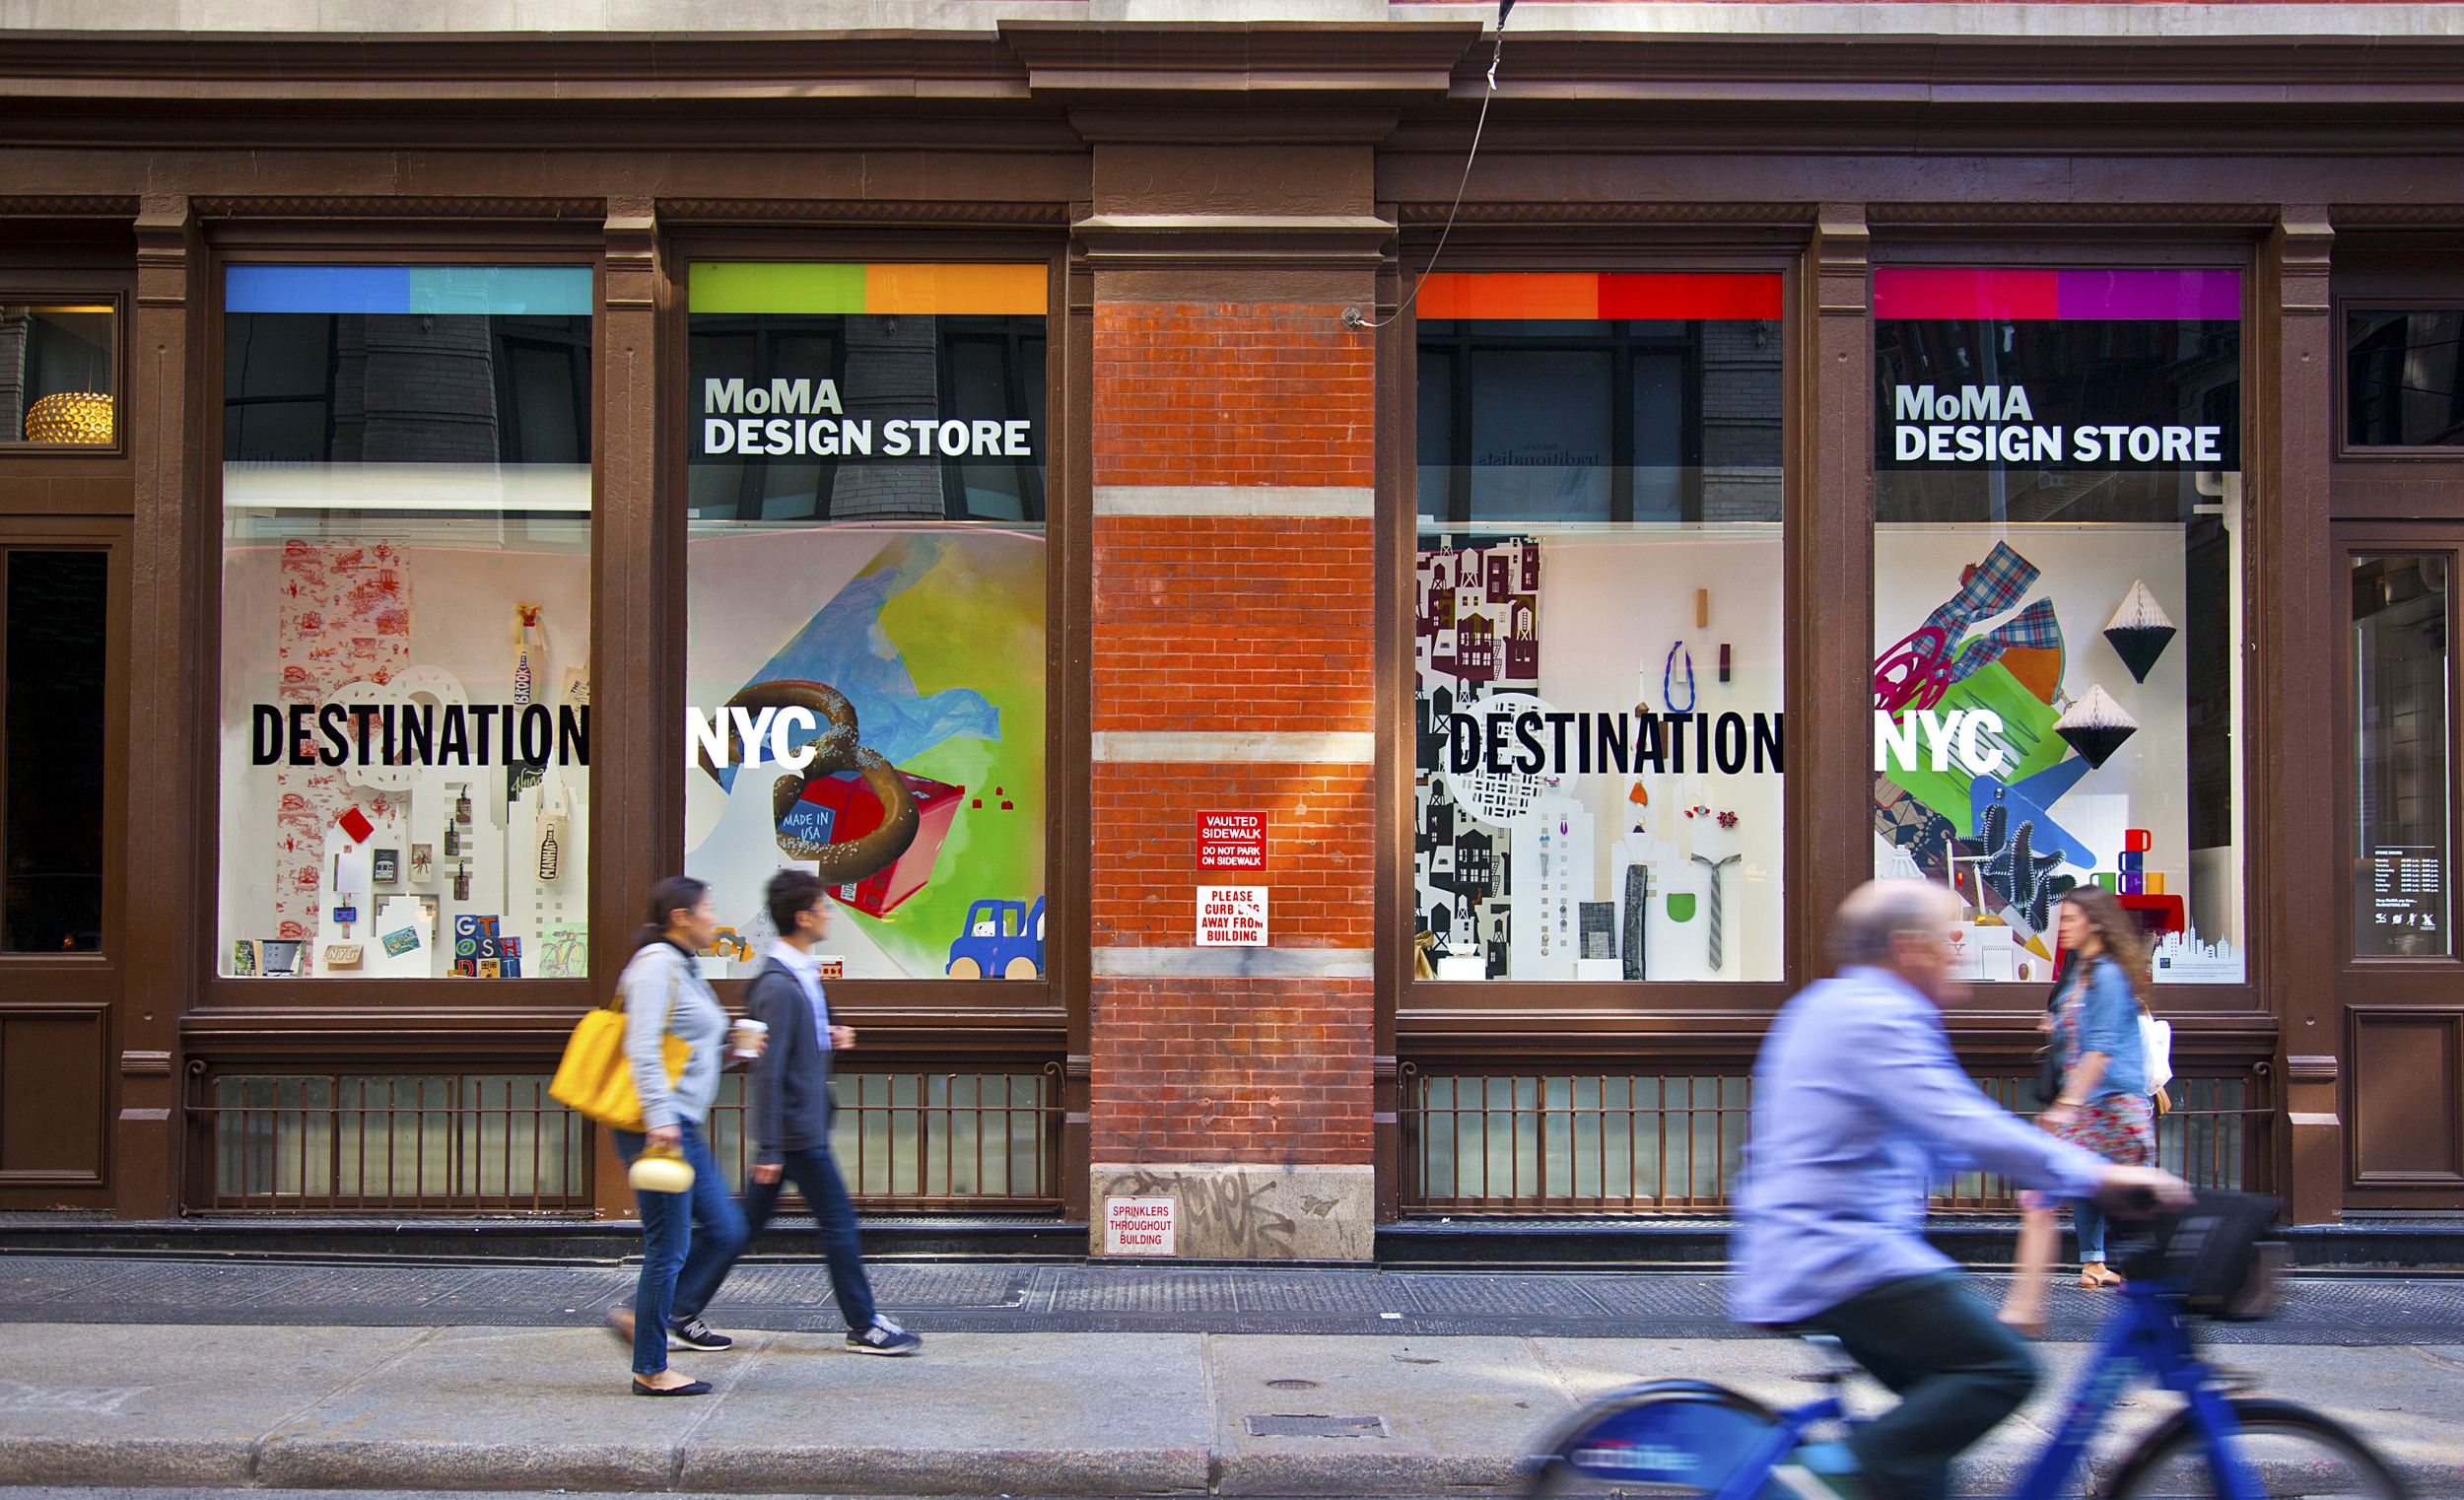 new york city guide The Ultimate New York City Guide Designers Should Follow new york city guide for designers moma design shop exterior 1